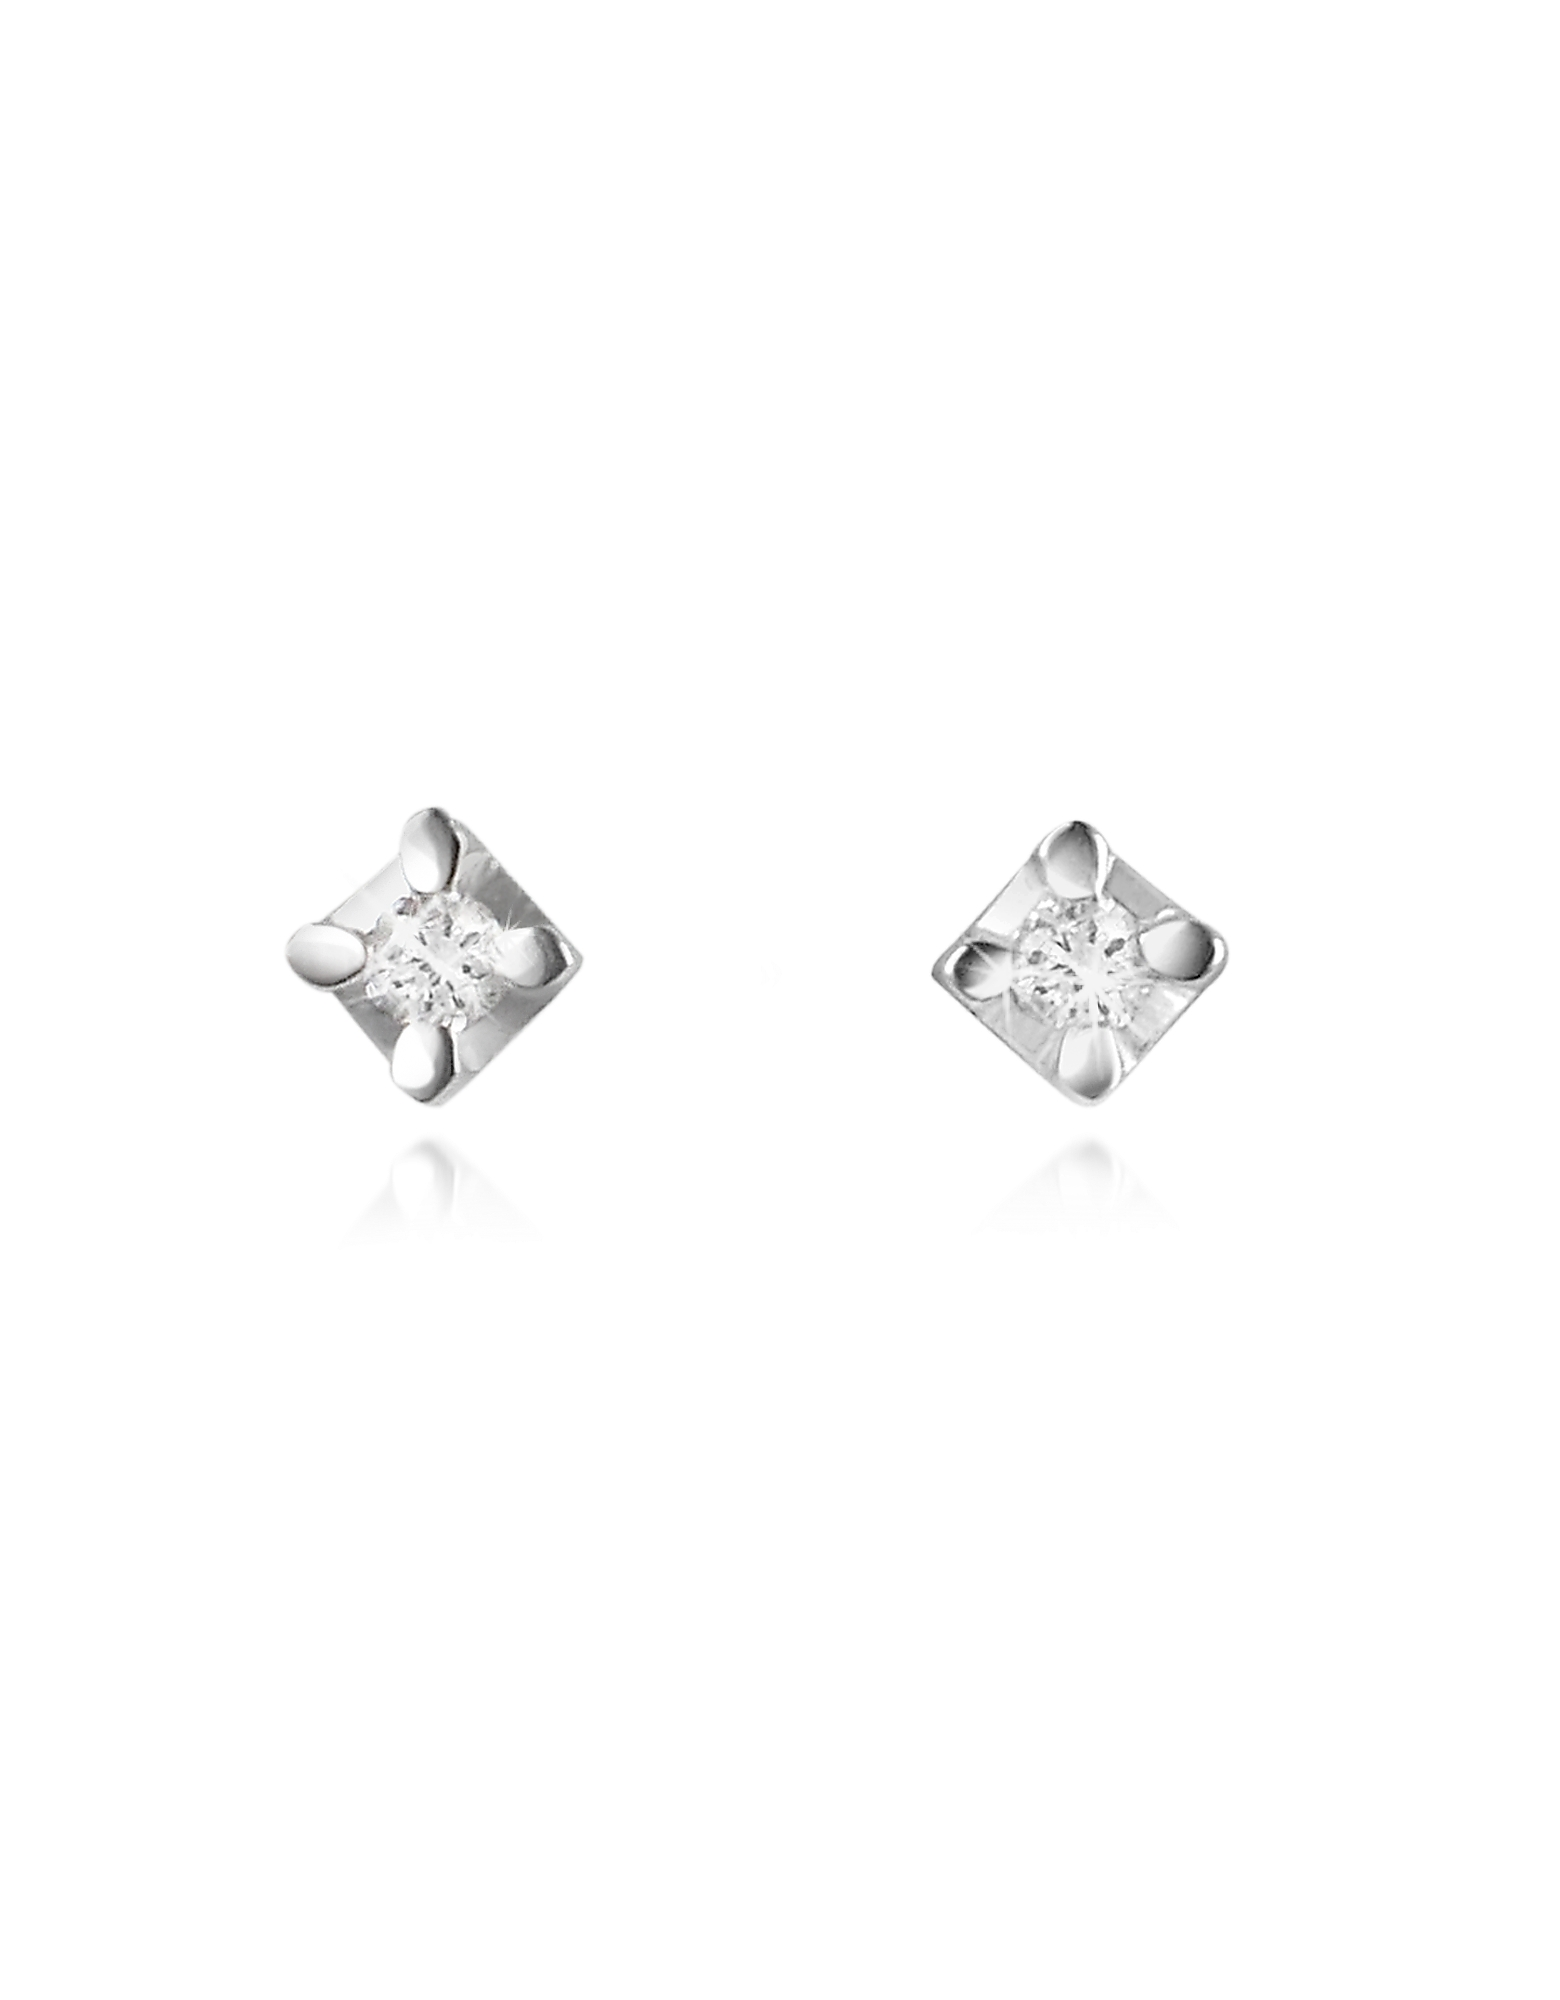 Forzieri Earrings, 0.04 ct Diamond Stud 18k Gold Earrings